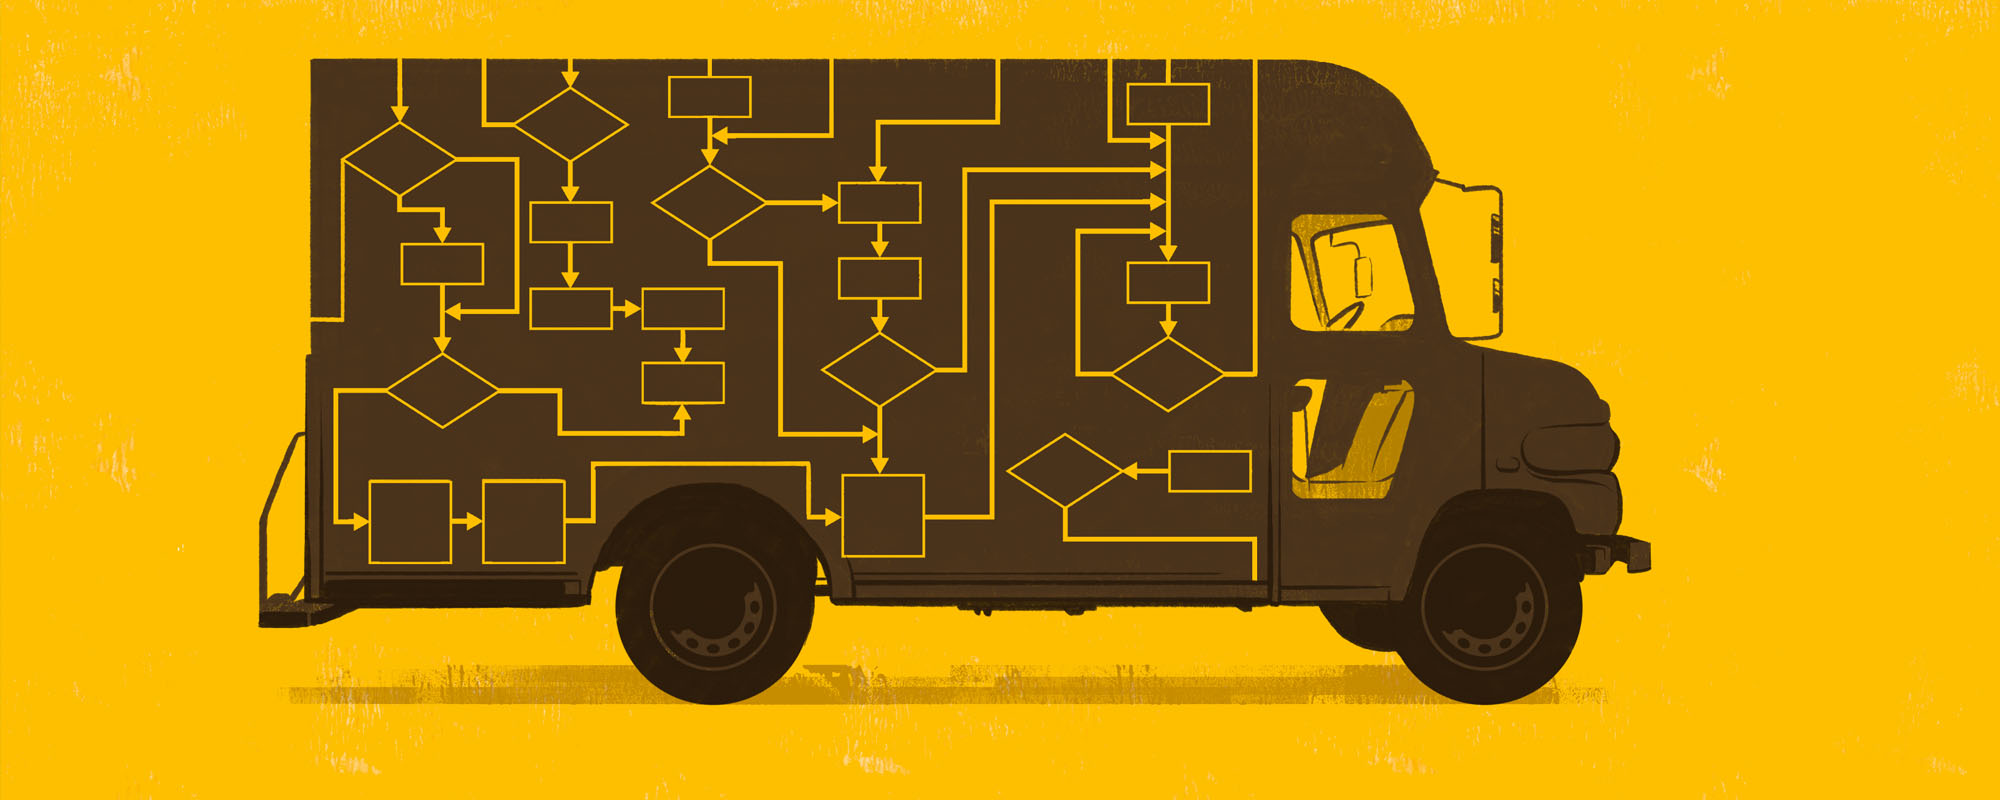 Illustration of a truck with paths